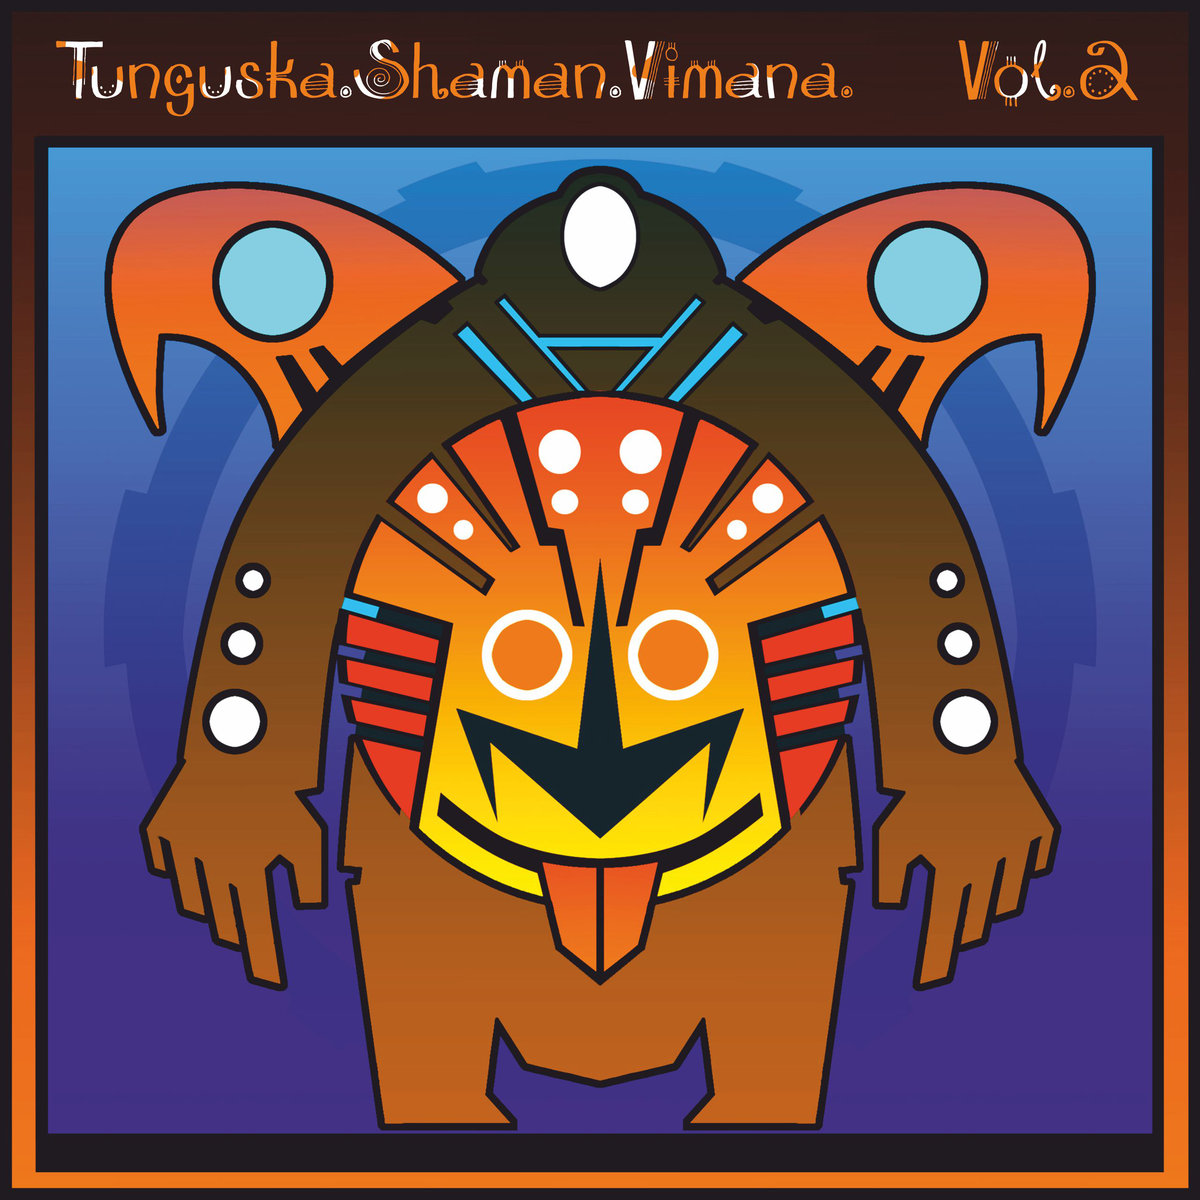 Radiotunan - Dance with pipe @ 'Ellipsis II - Tunguska.Shaman.Vimana. Vol.2' album (electronic, ambient)